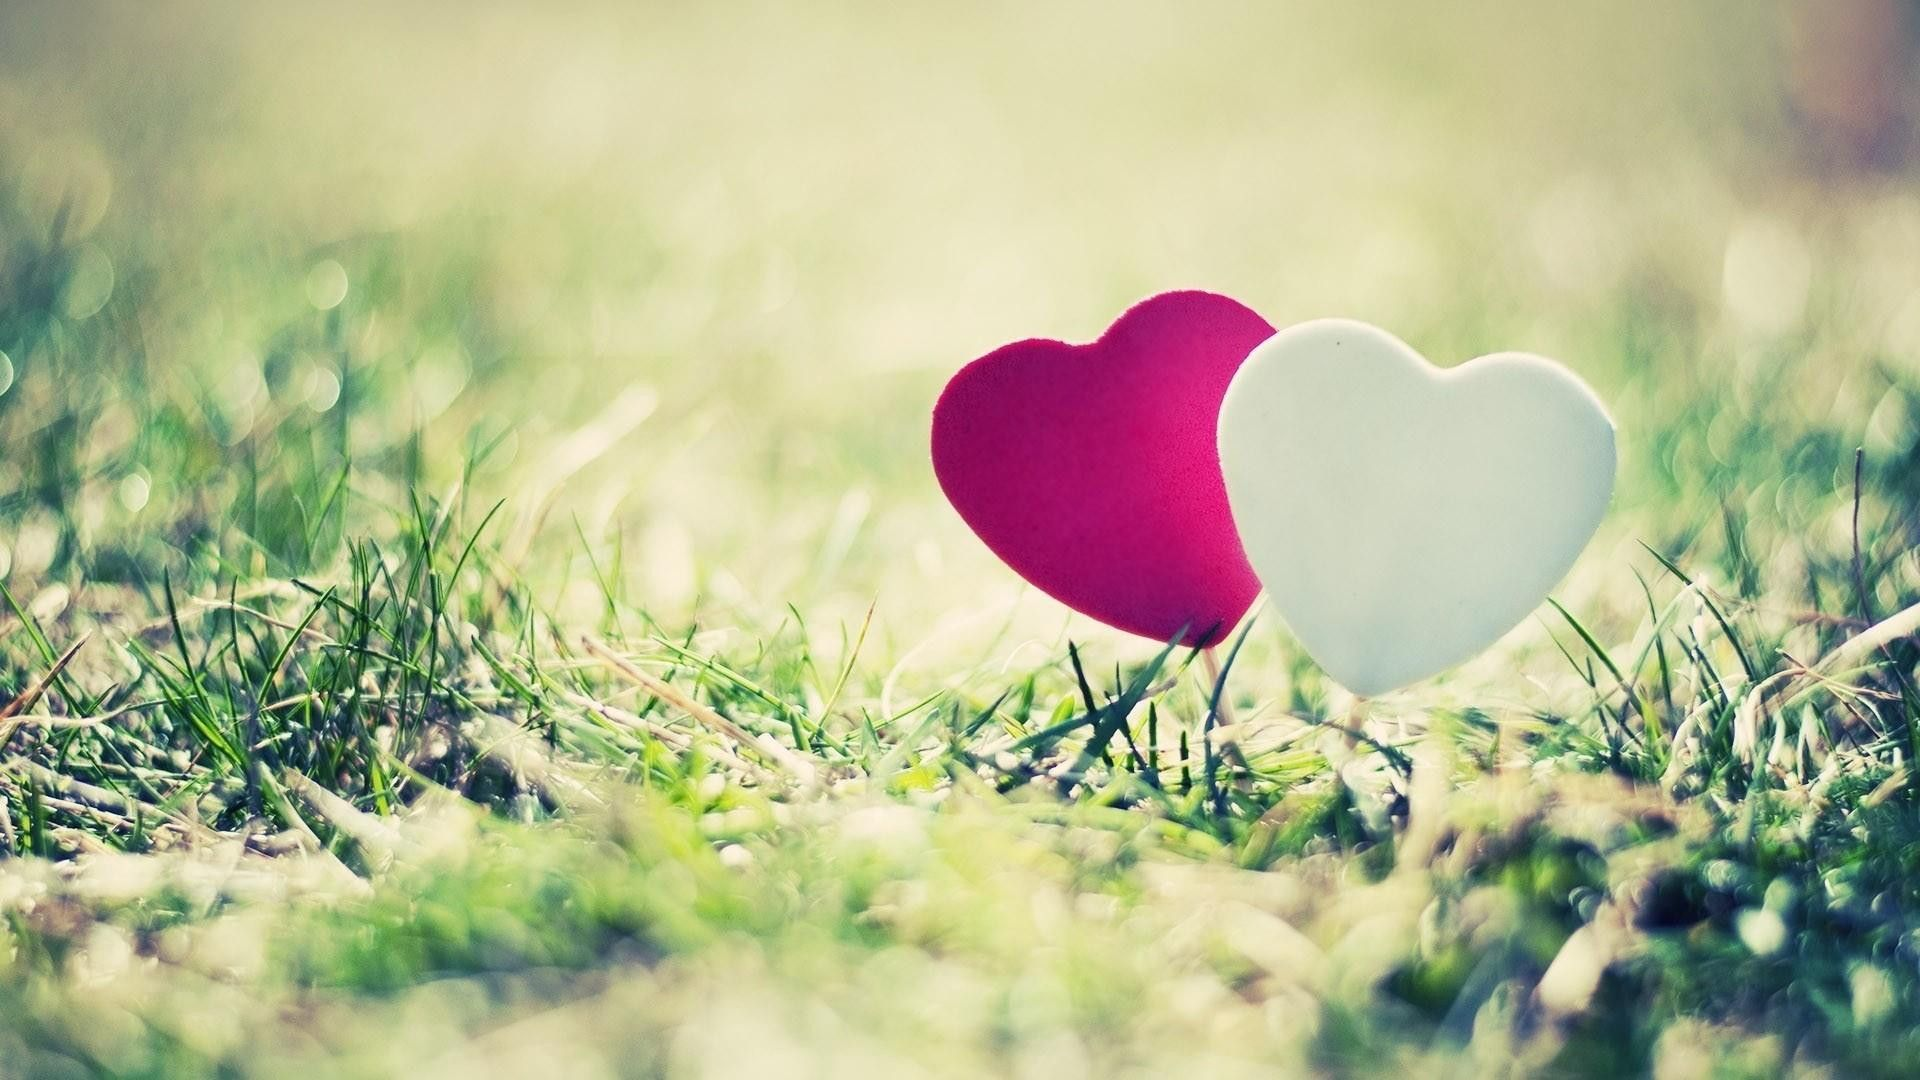 Love Wallpapers 55 Top Free Love Hd Wallpaper For Mobile Phone Love Wallpaper Love Wallpaper For Mobile Love Wallpaper Download